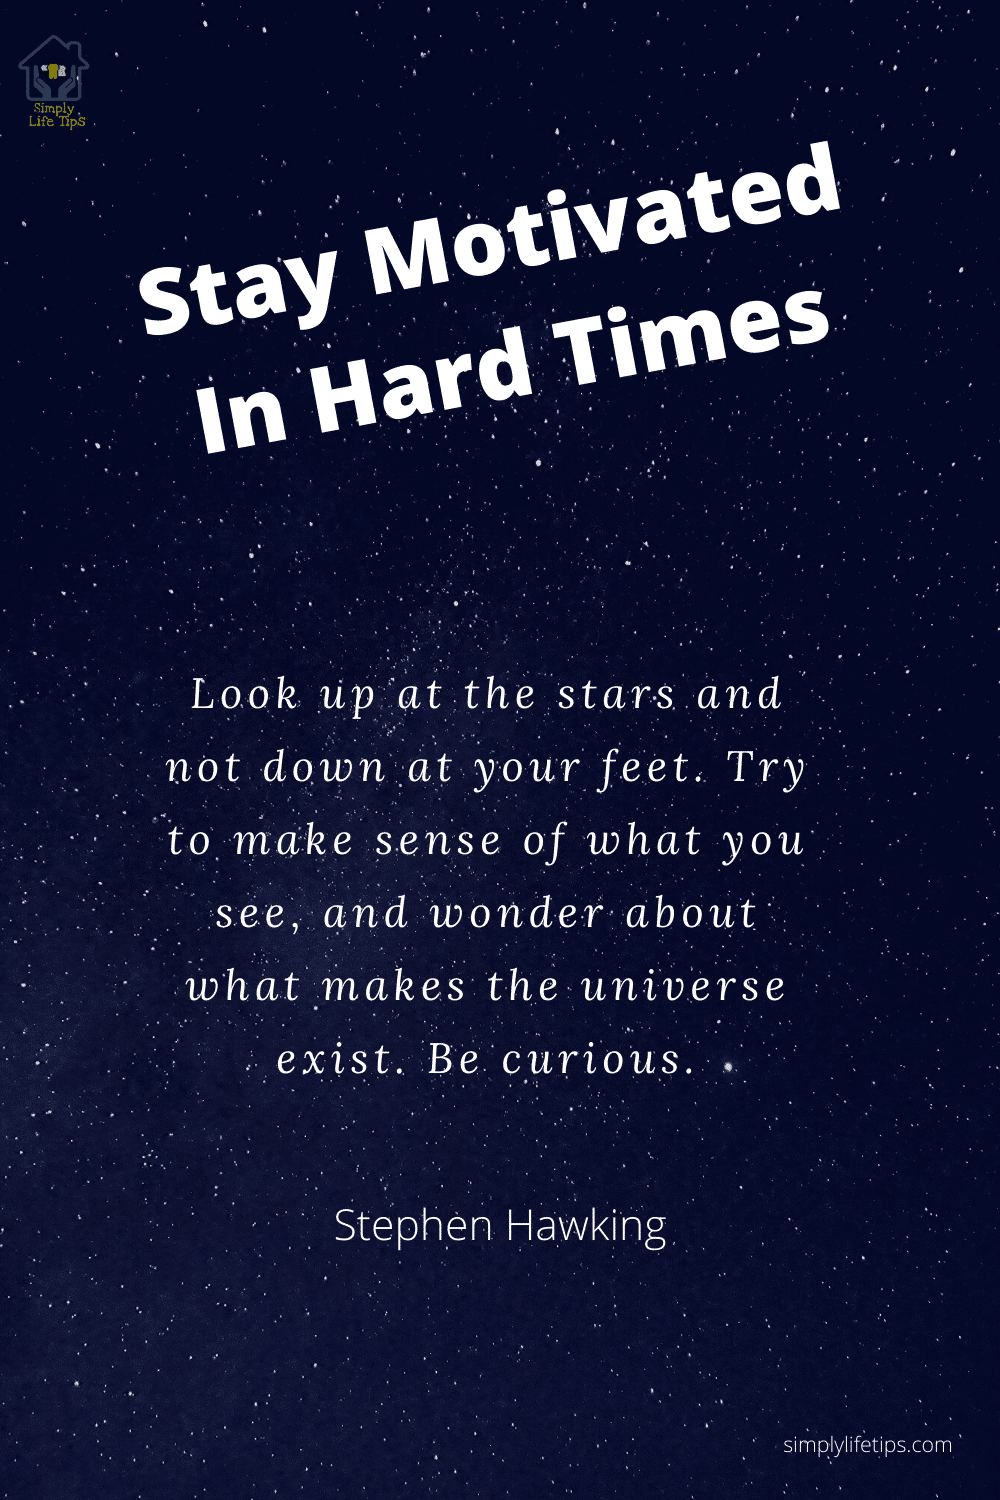 Stay Motivated in hardtimes  Stephen Hawking Quote